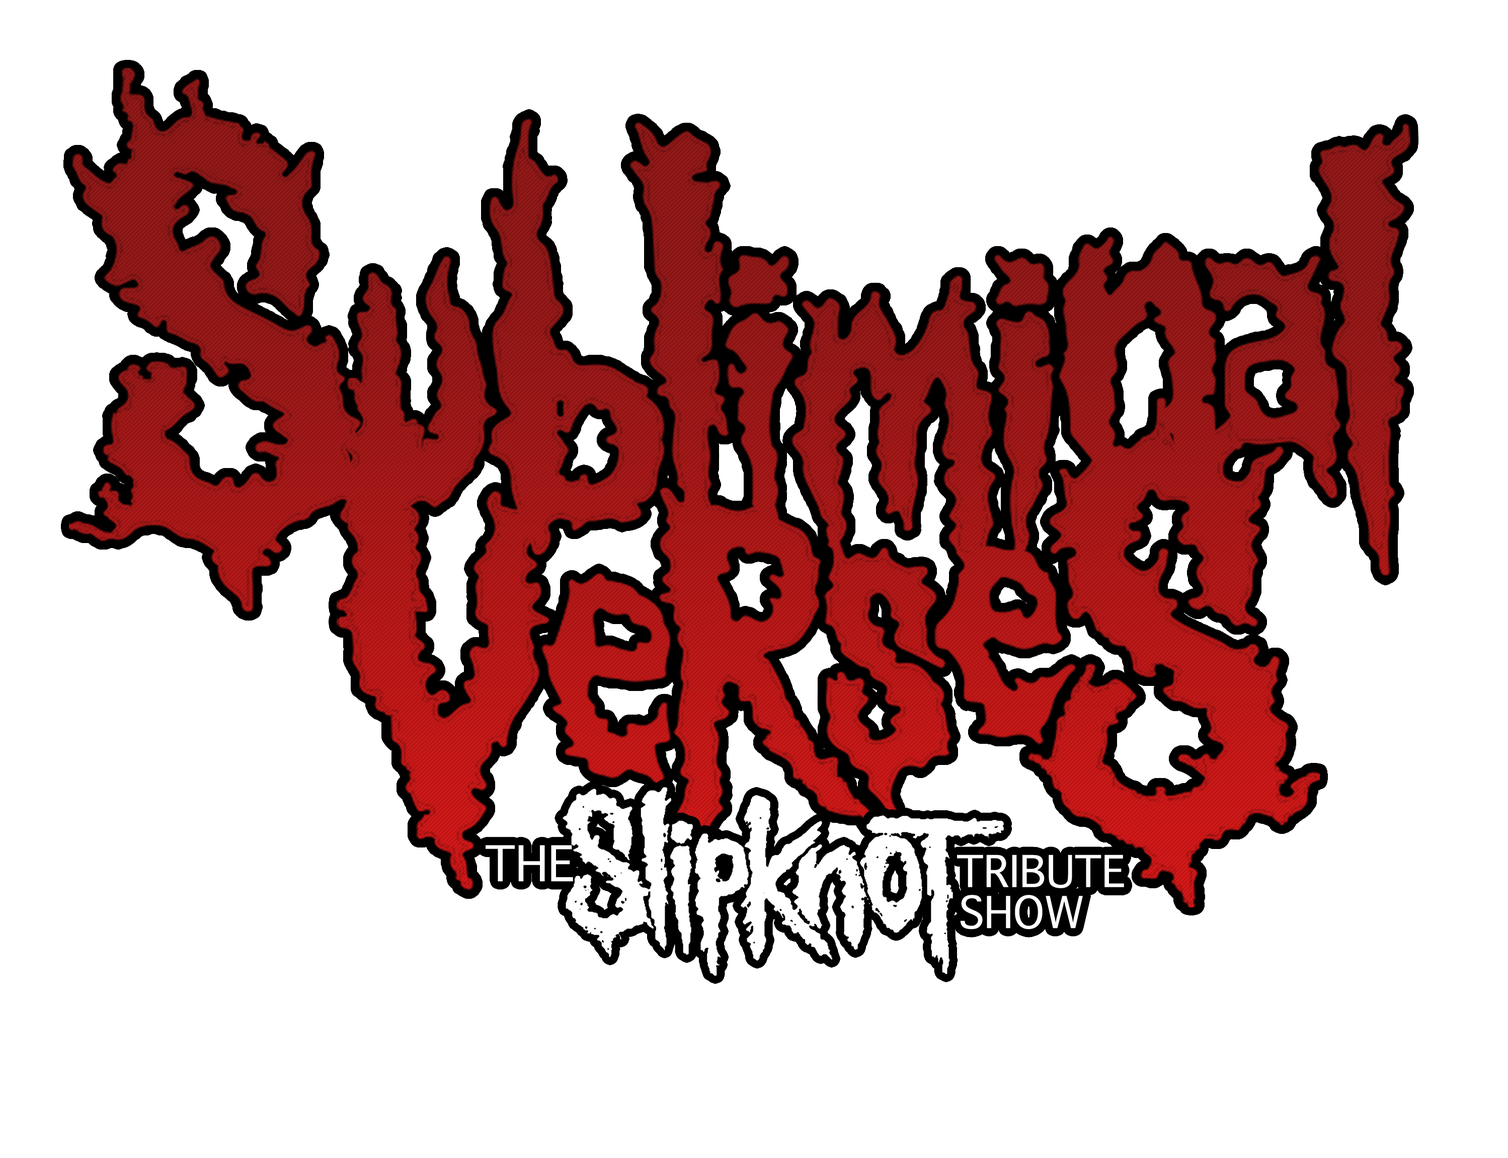 slipknottribute